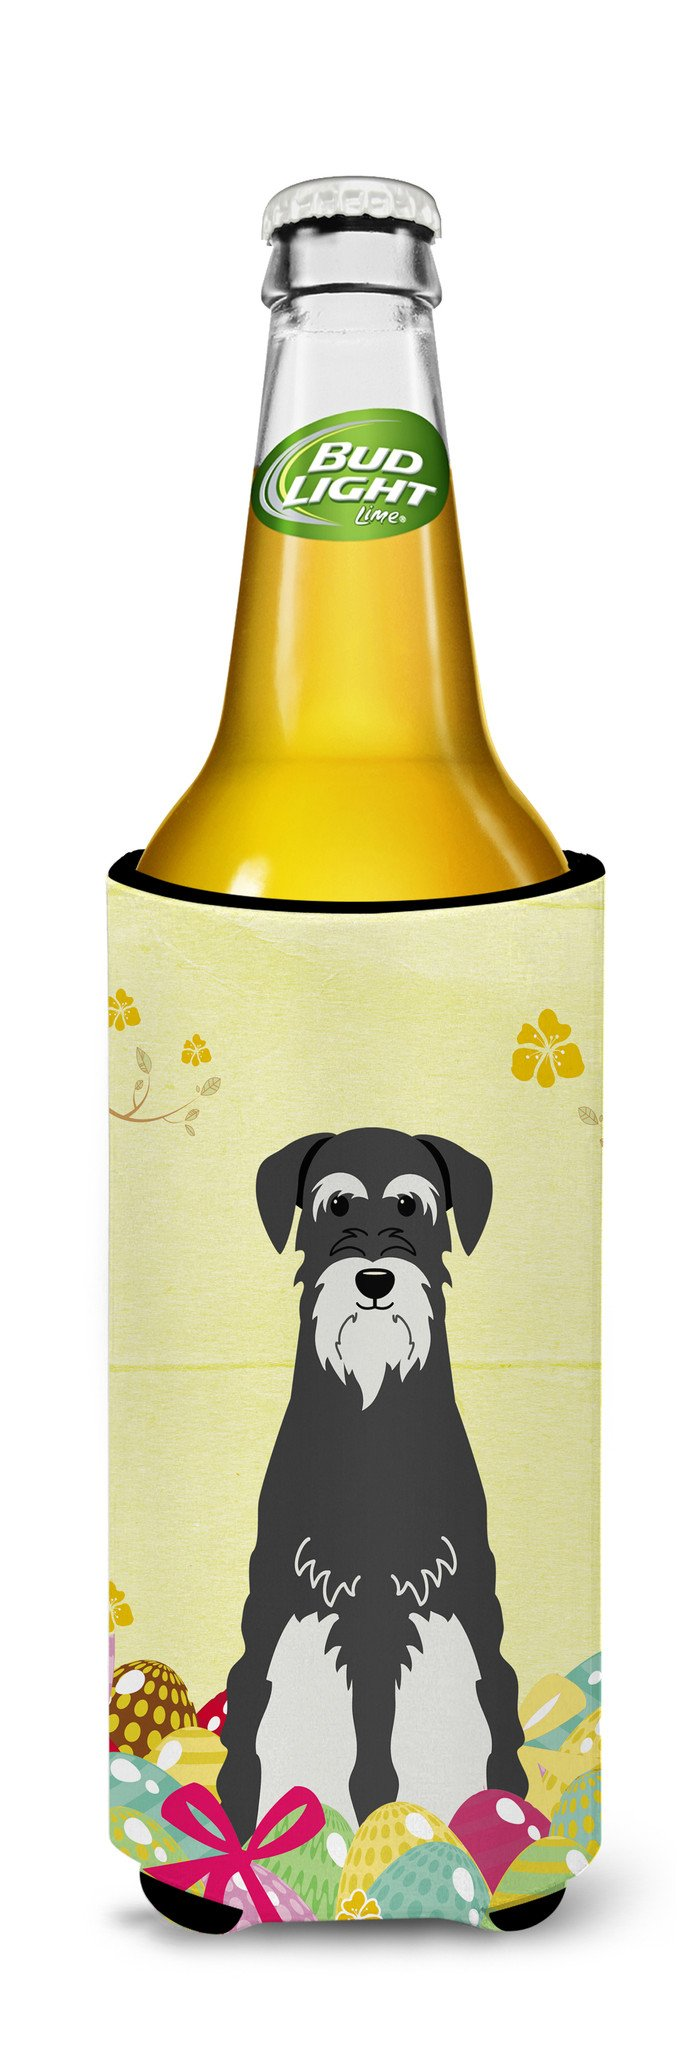 Easter Eggs Standard Schnauzer Salt and Pepper Michelob Ultra Hugger for slim cans BB6033MUK by Caroline's Treasures